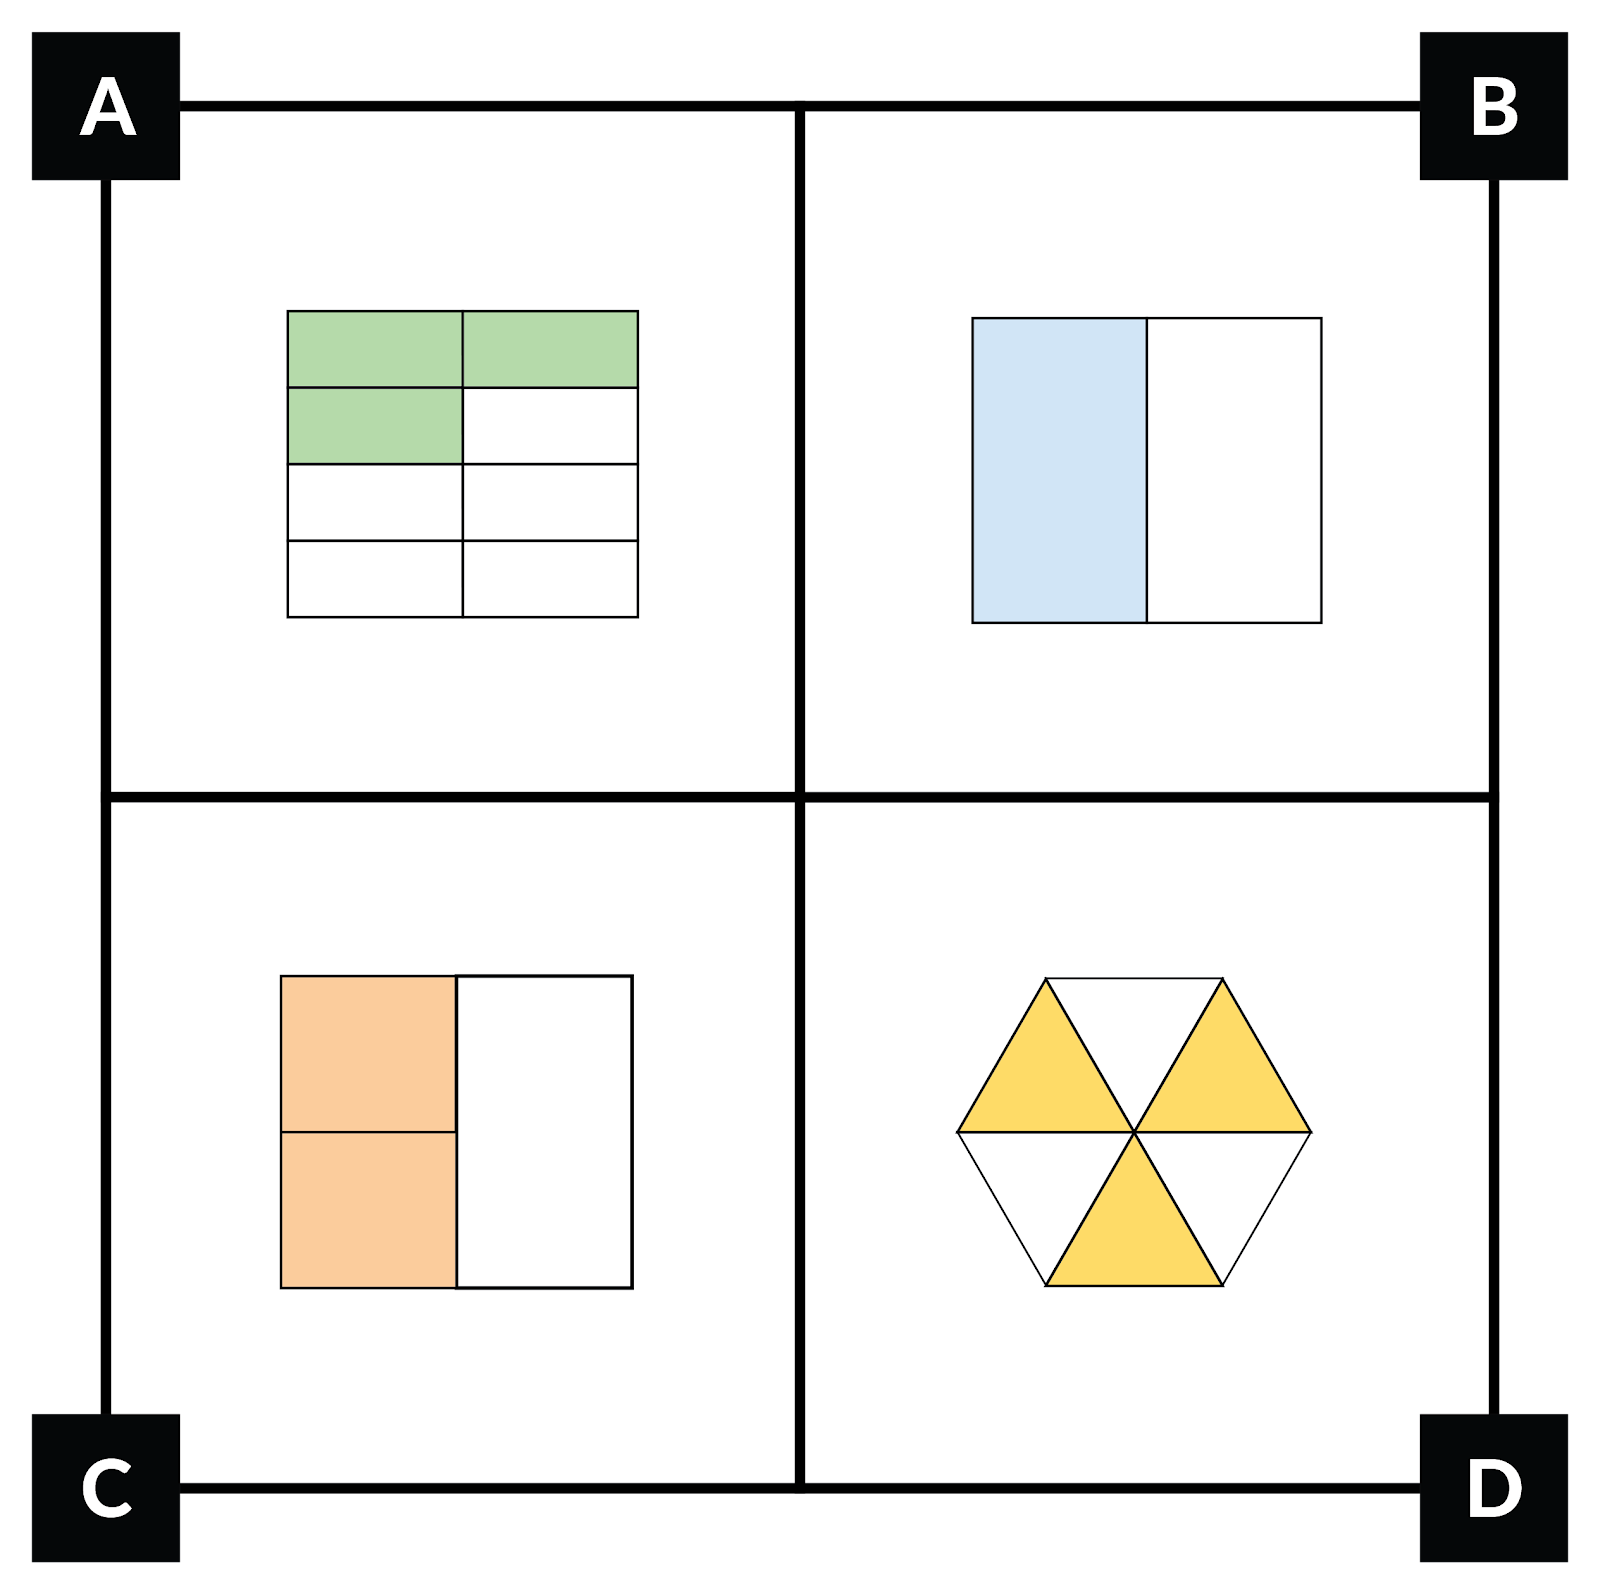 A. shows a square with 8 equal parts. 3 of the parts are shaded. B. shows a square with 2 equal parts. 1 part is shaded. C. shows a square with 3 parts. 2 parts together equal the third part these 2 parts are shaded. D. shows a hexagon with 6 equal parts. 3 parts are shaded.